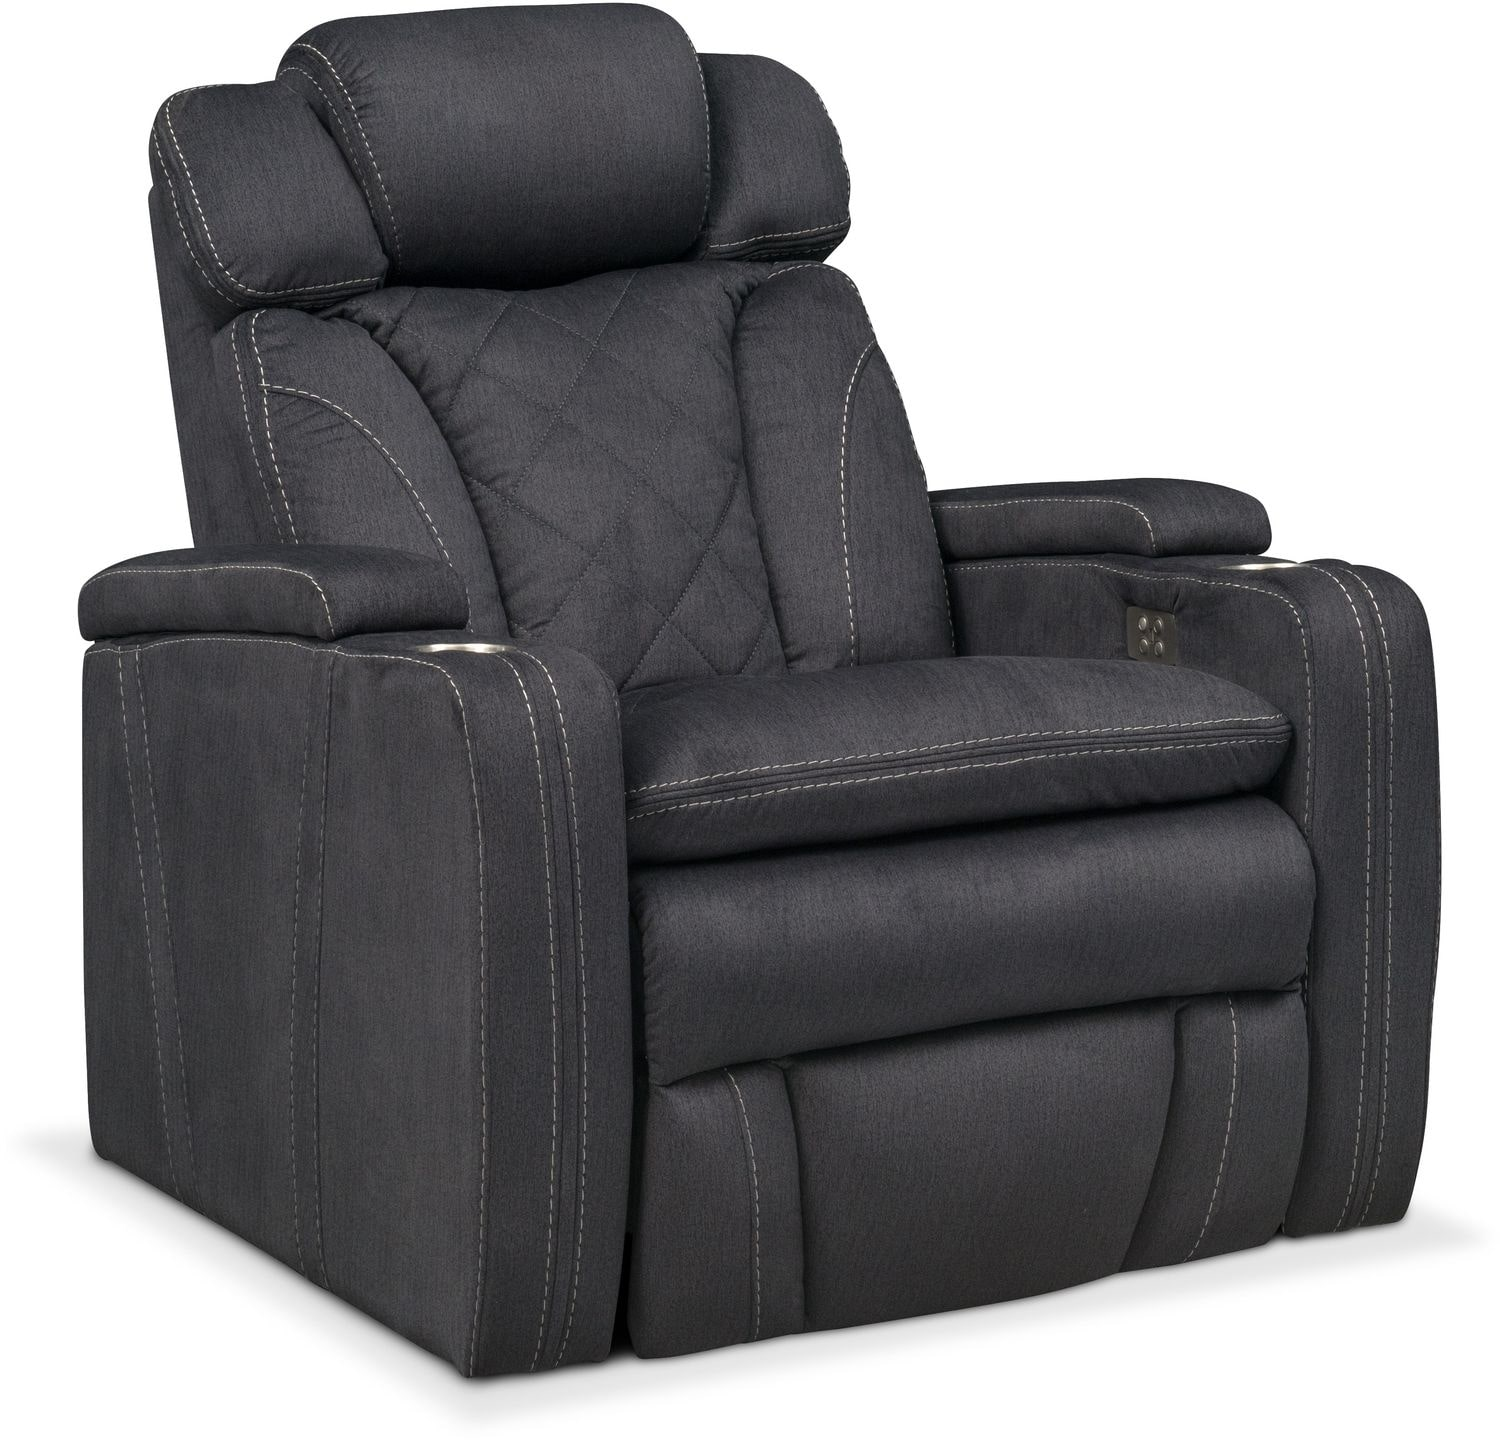 Recliners and Glider Chairs Value City